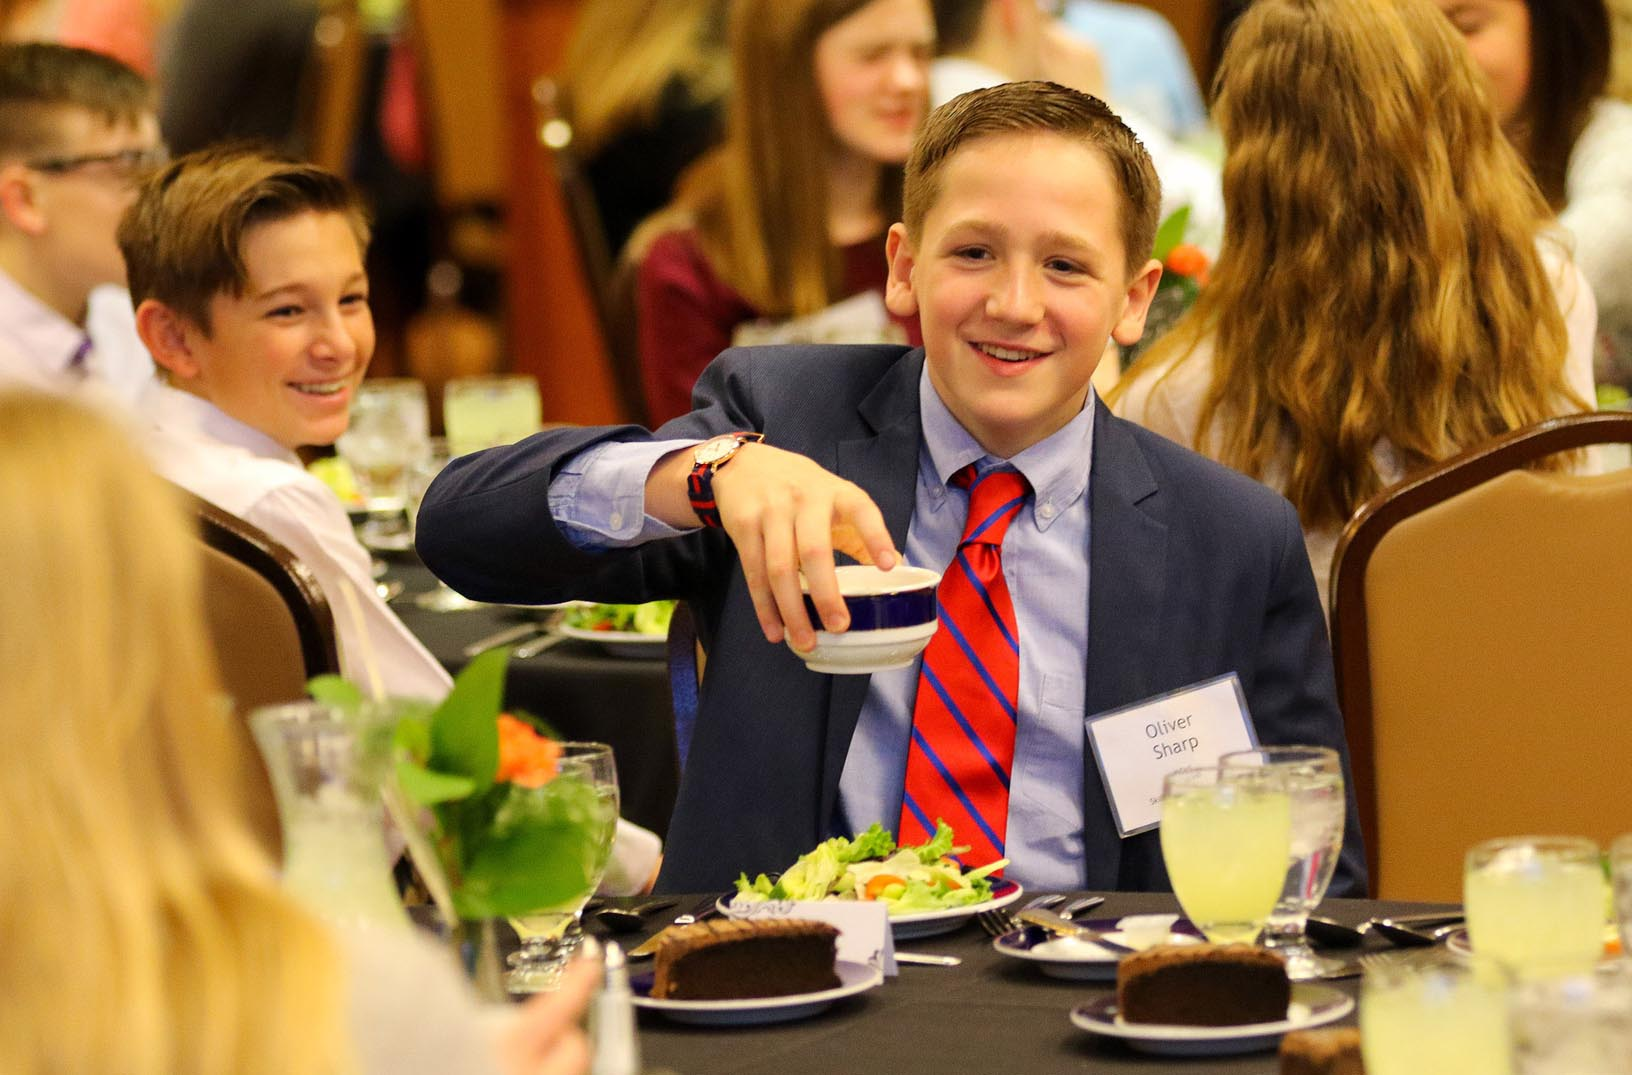 Kearney Catholic seventh grader Oliver Sharp is looking sharp in a suit and tie during Friday evening's Skills for Success session on dinner etiquette at The Archway in Kearney.